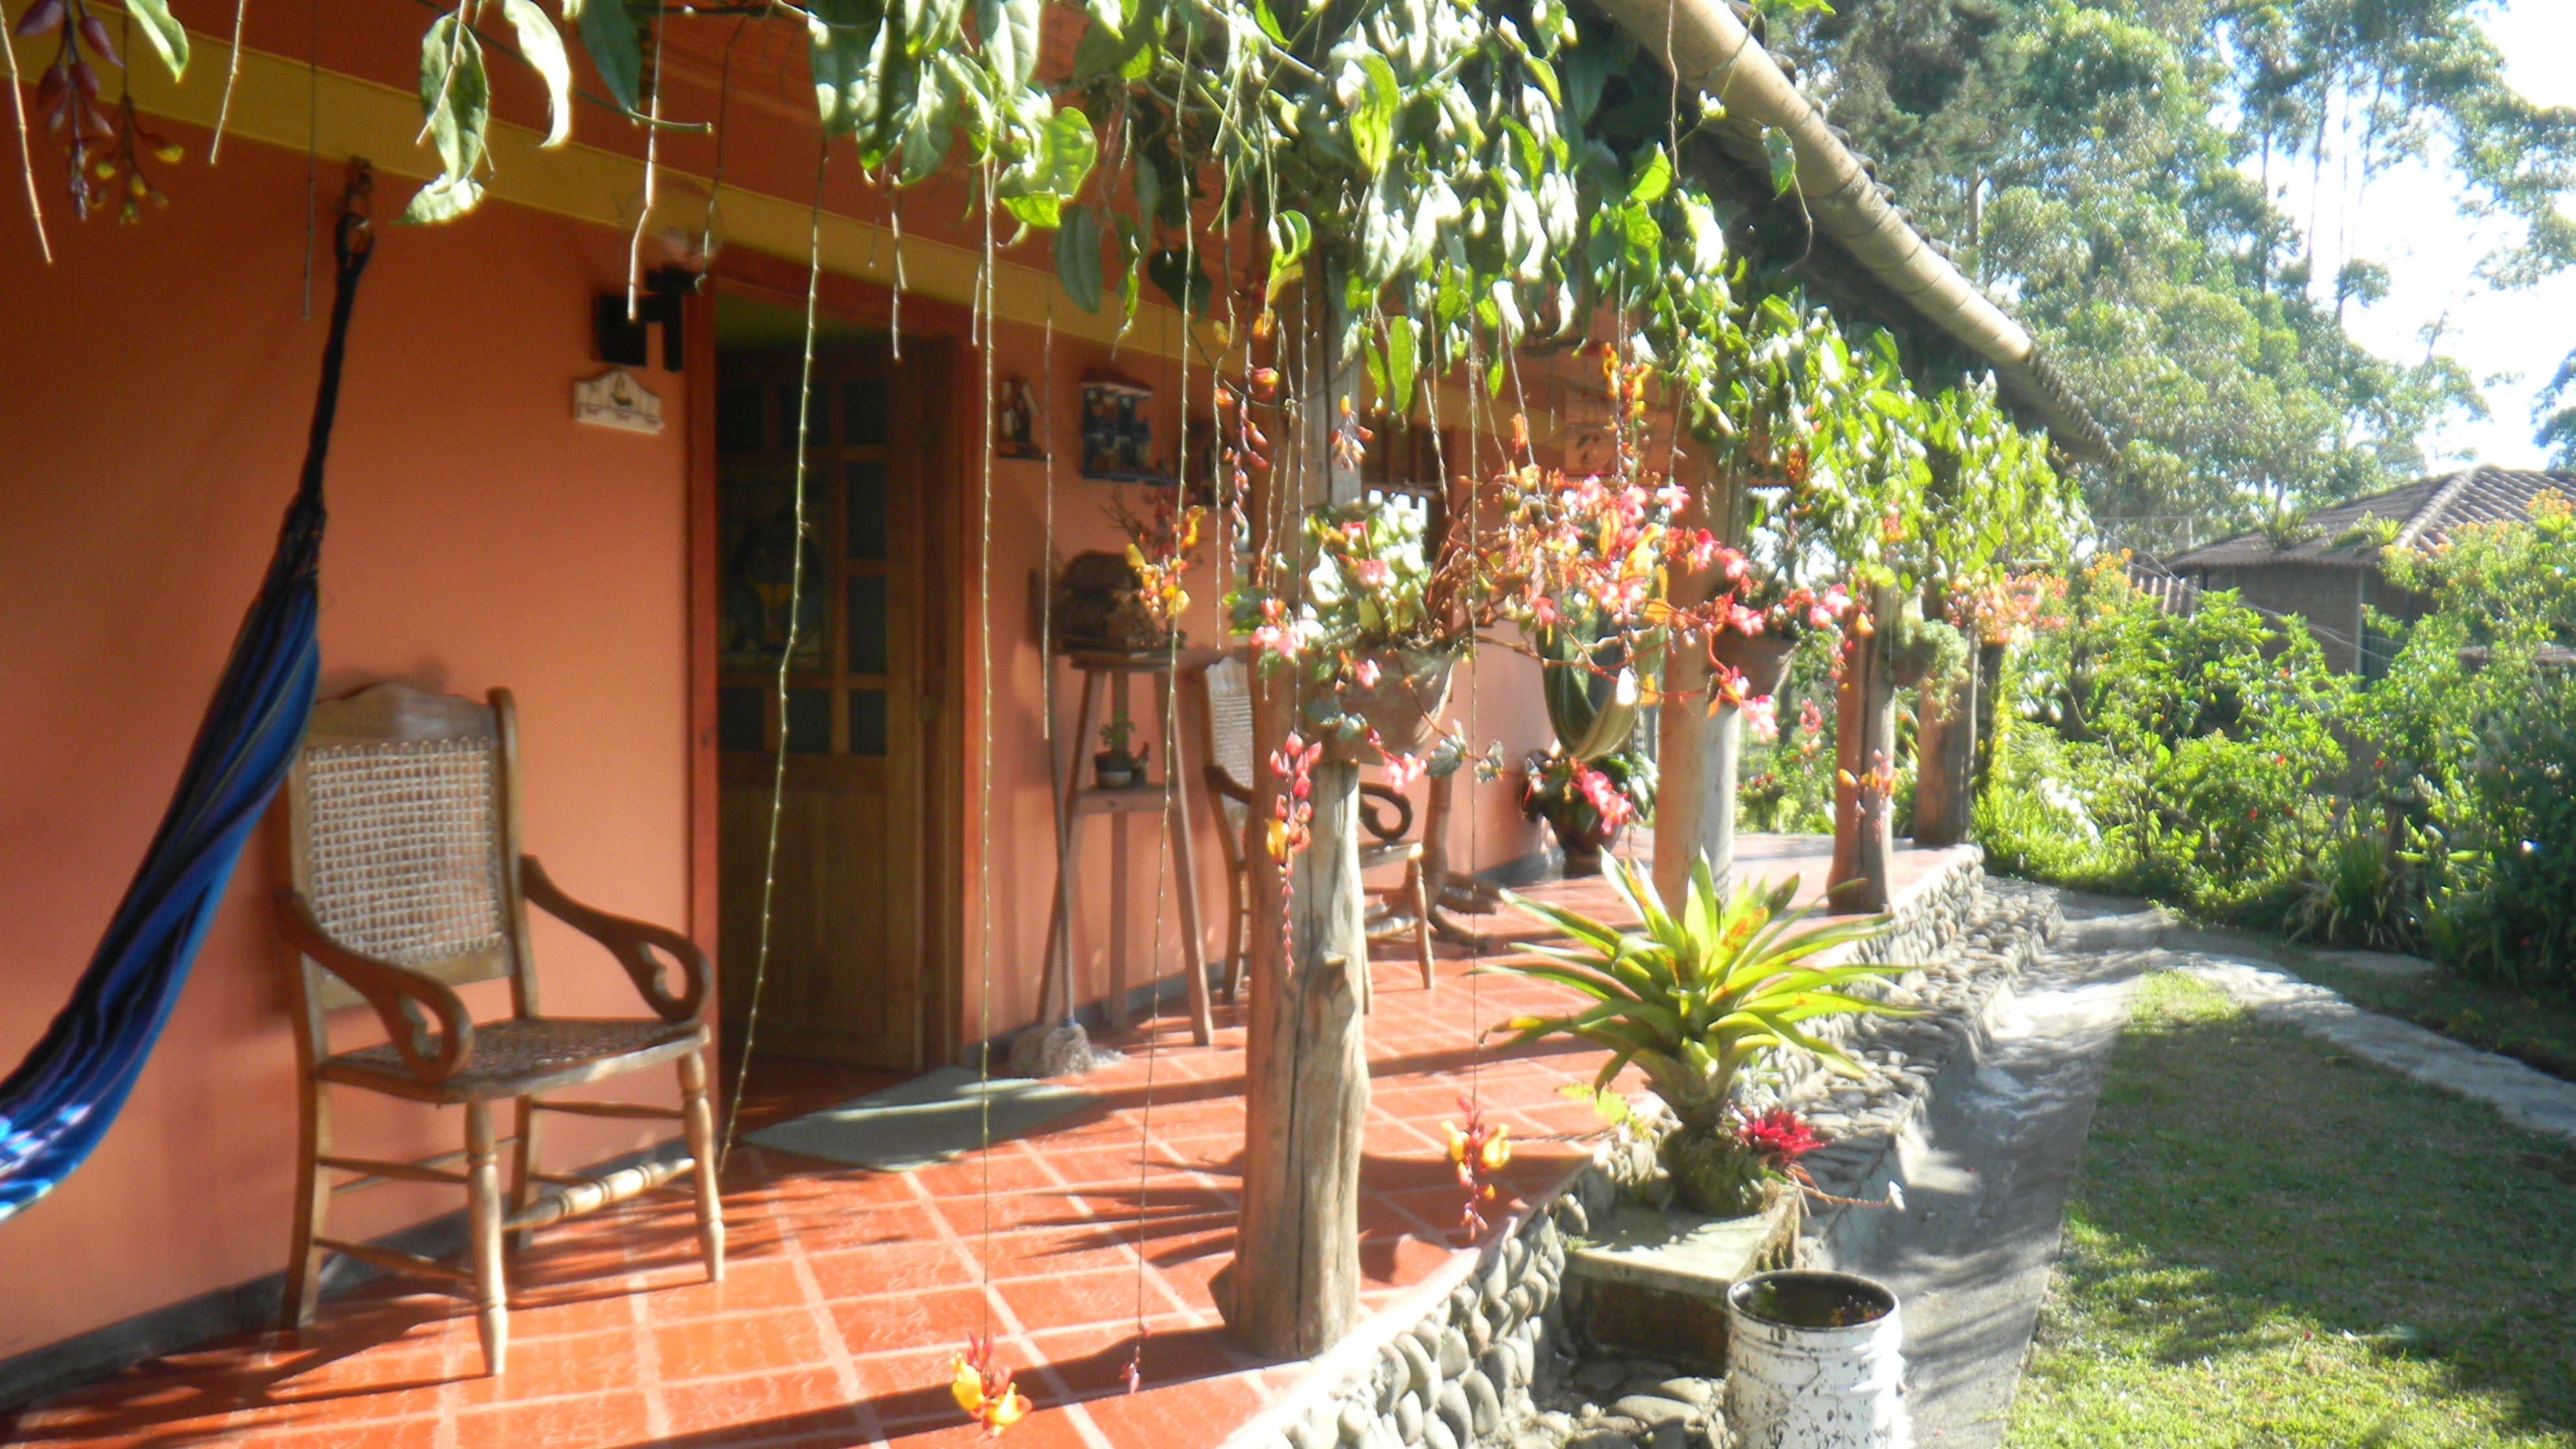 colombian spiritual retreat   Read it to absorb my awesomeness